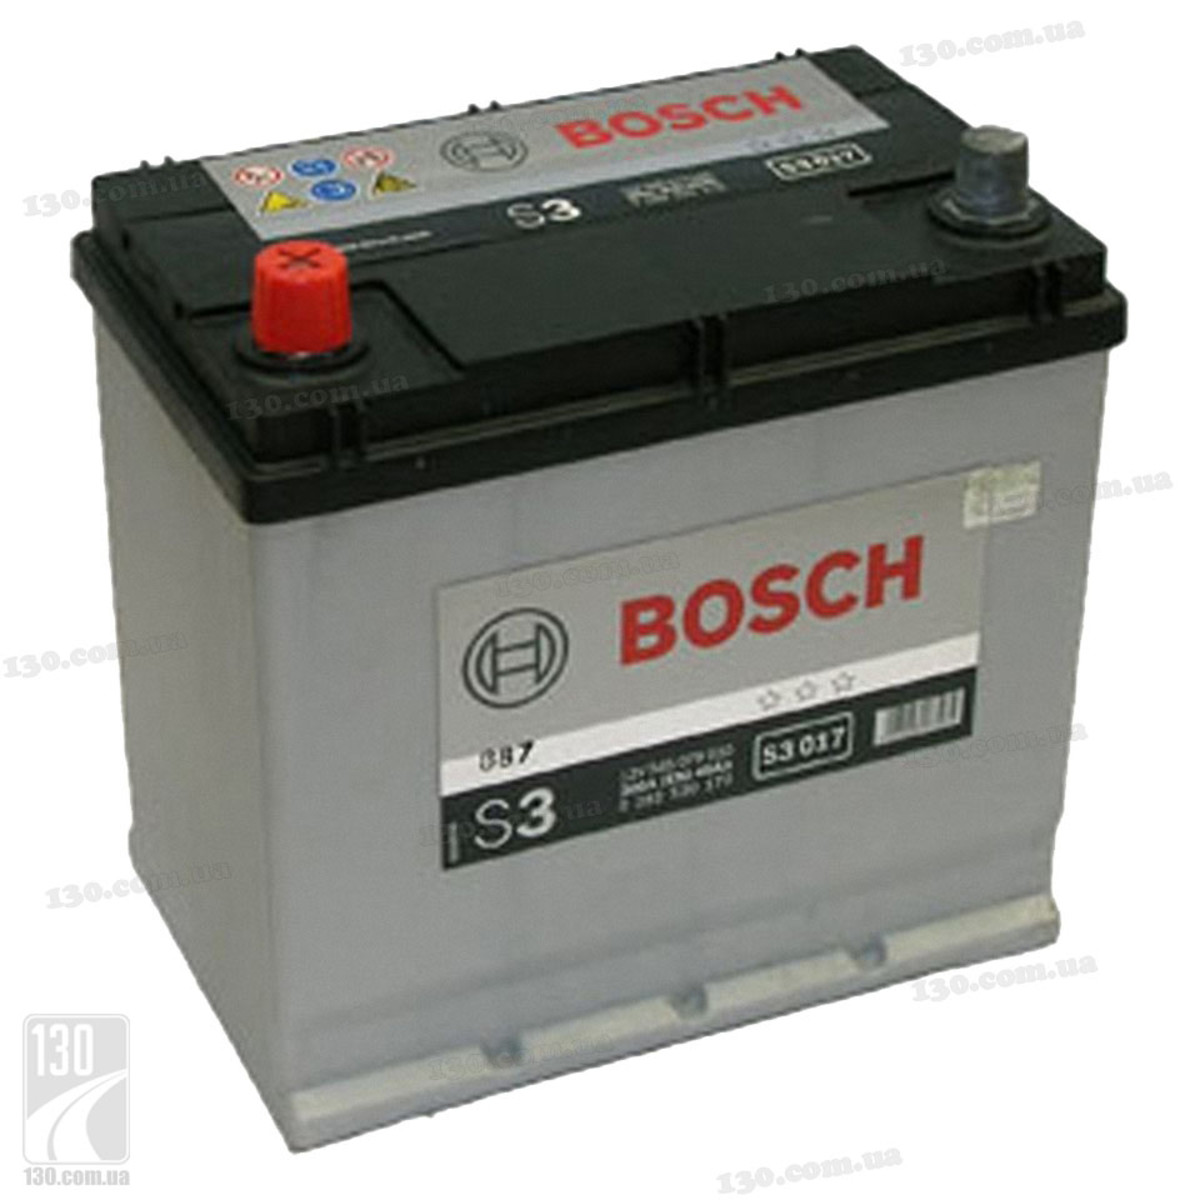 Can Bad Car Battery Cause Car To Die When Driving